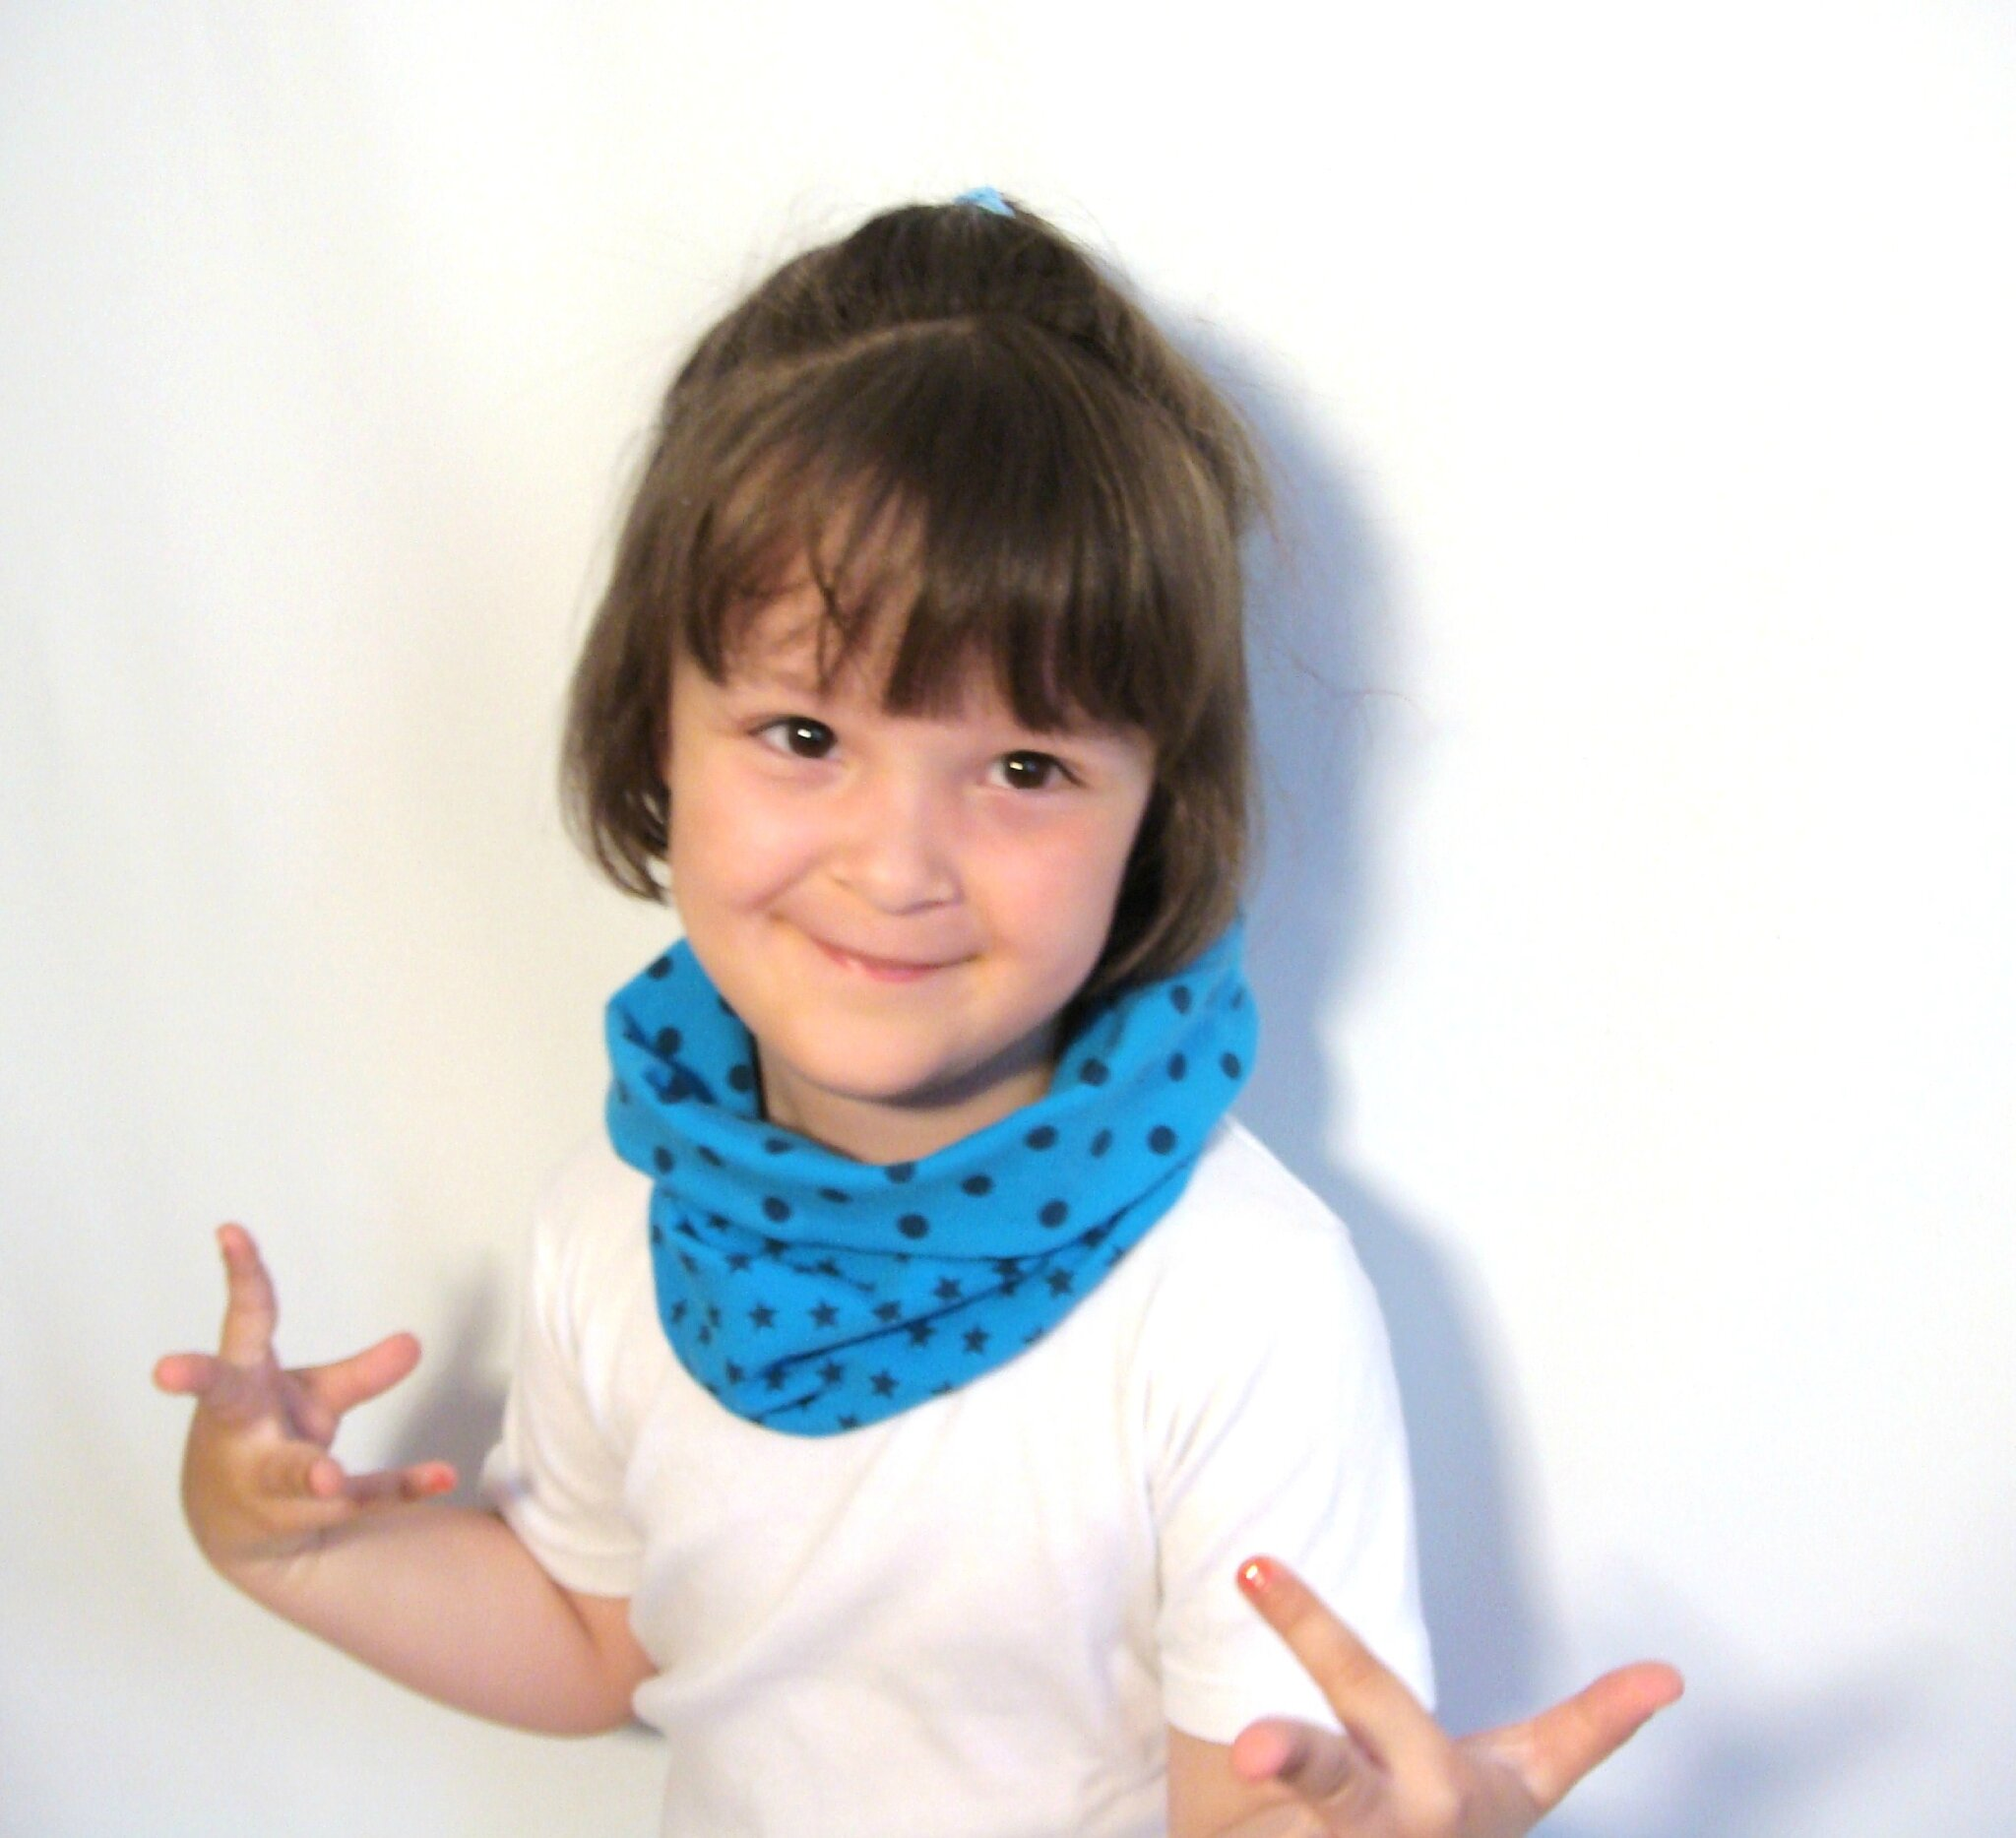 vendu tour de cou foulard et snood r versible pour enfant pois et etoiles bleu en jersey de. Black Bedroom Furniture Sets. Home Design Ideas